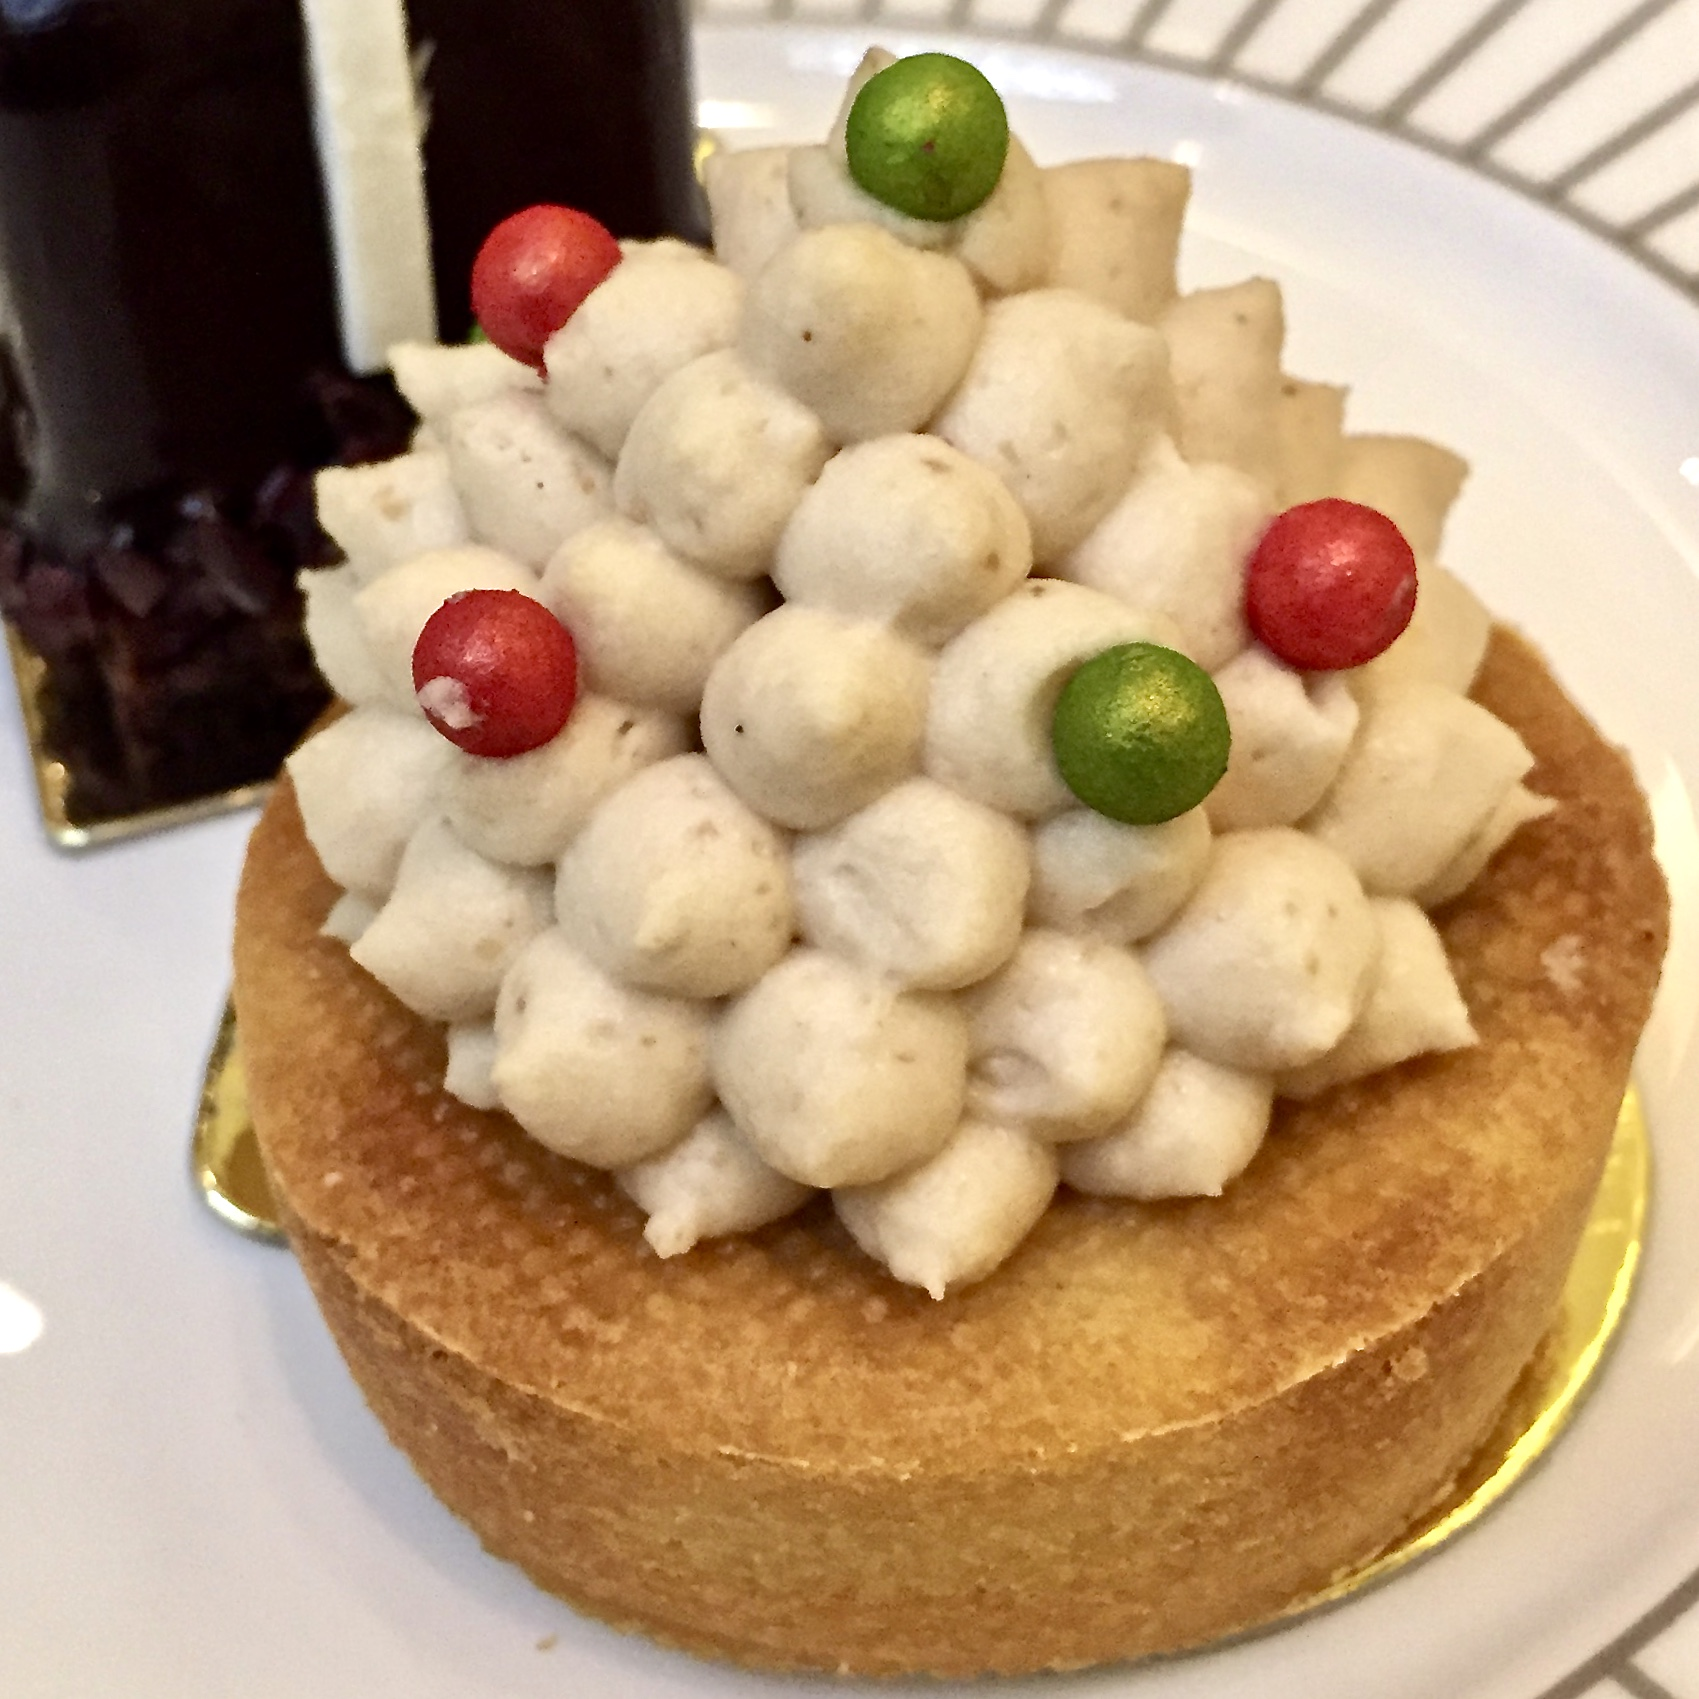 Things to do with kids in London #festivetea